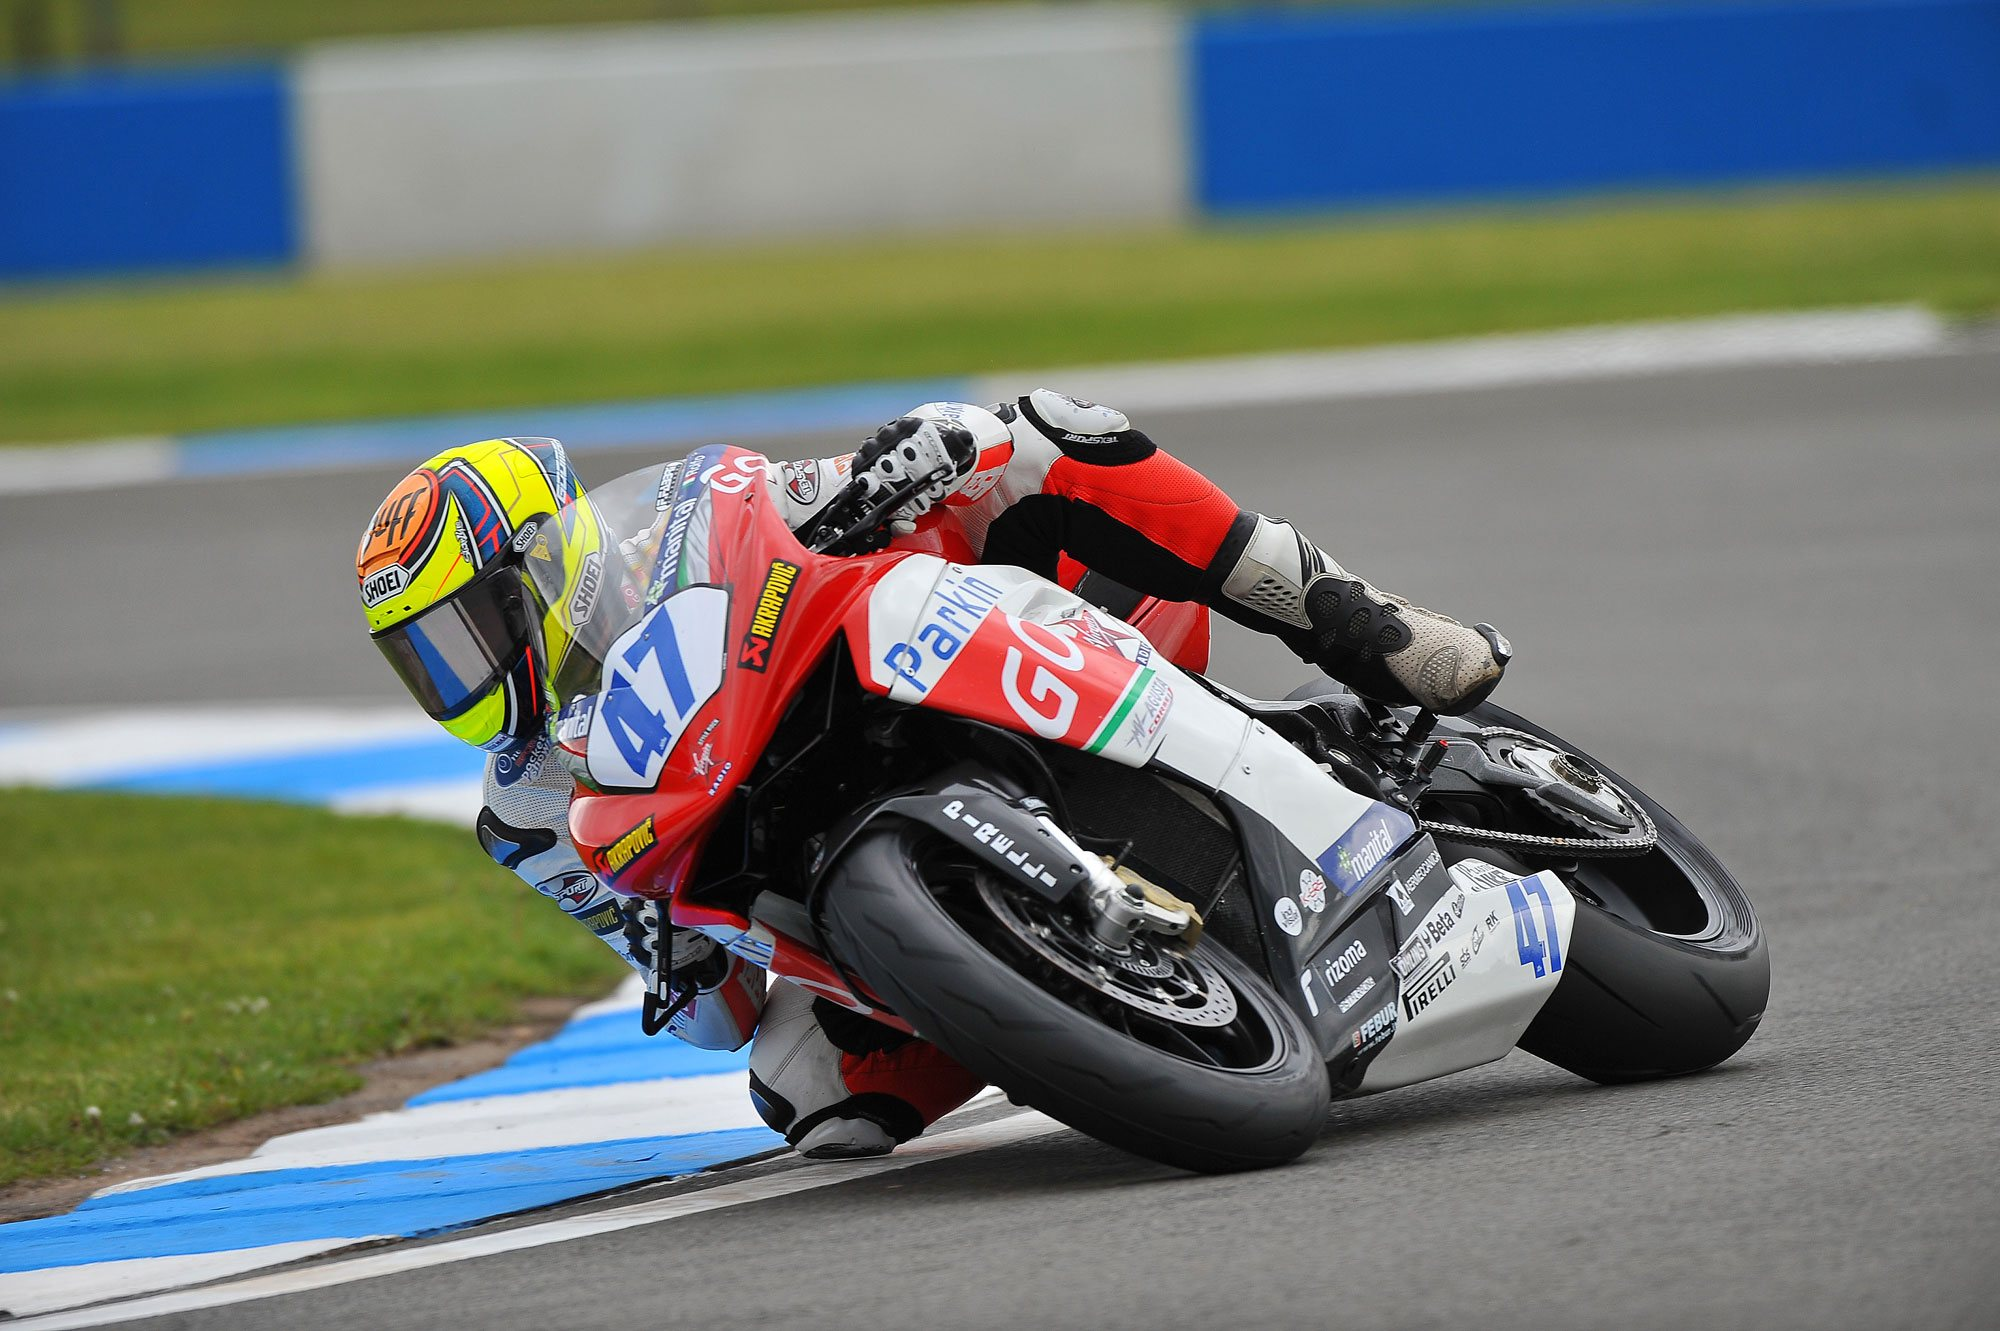 2013 world supersport: mv agusta back on the podium after 37 years